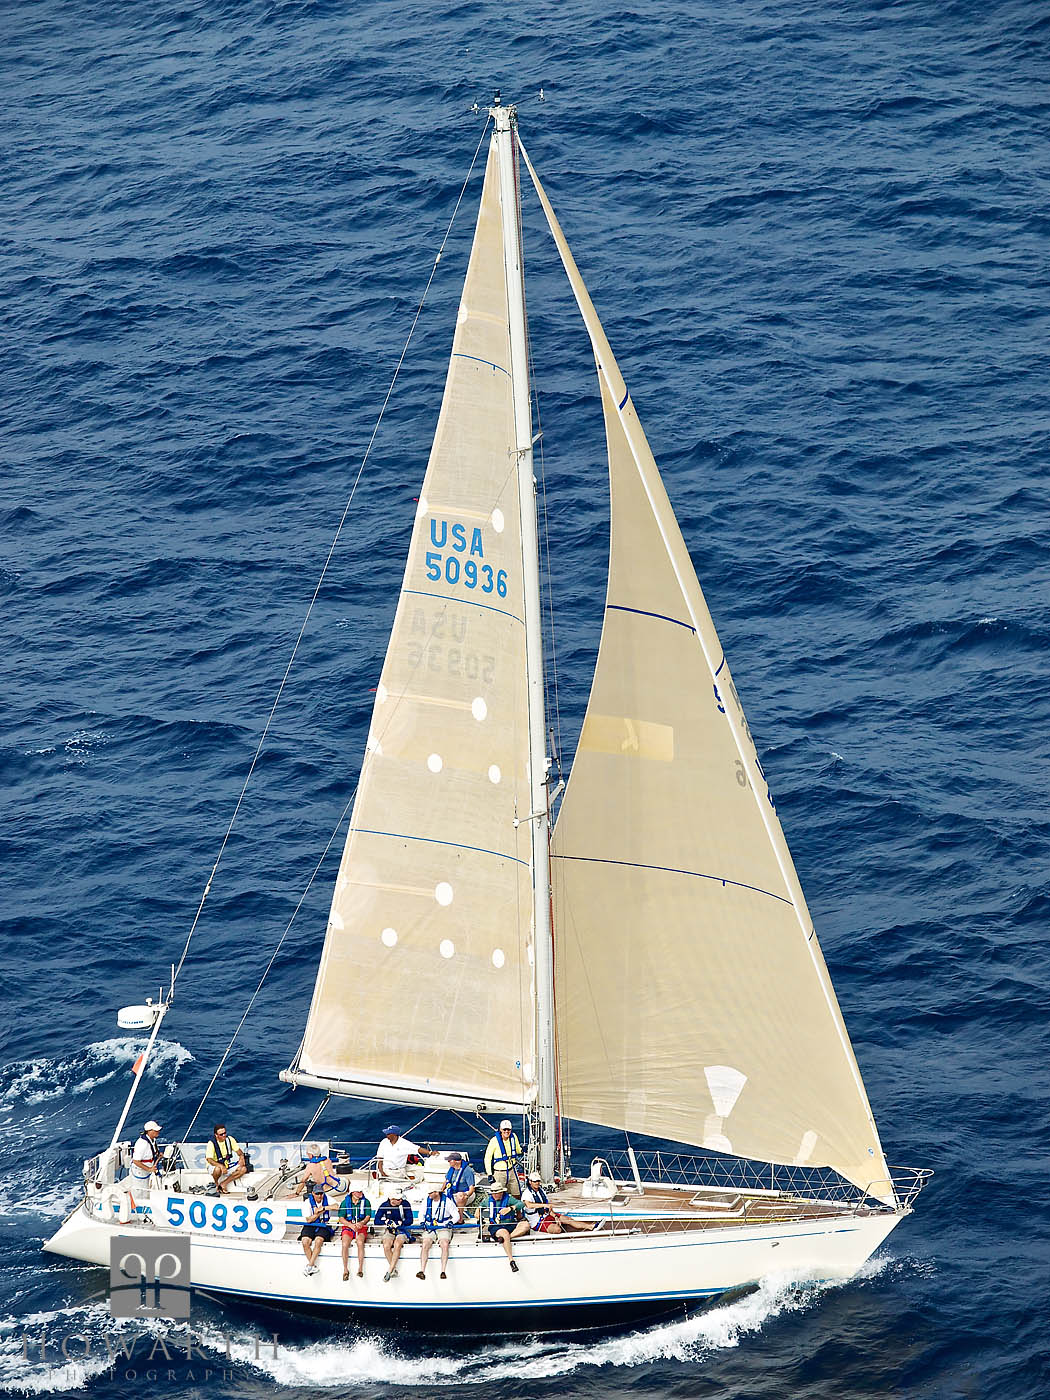 babe, sail, boat, marion, race, yacht, offshore, 2007, photo